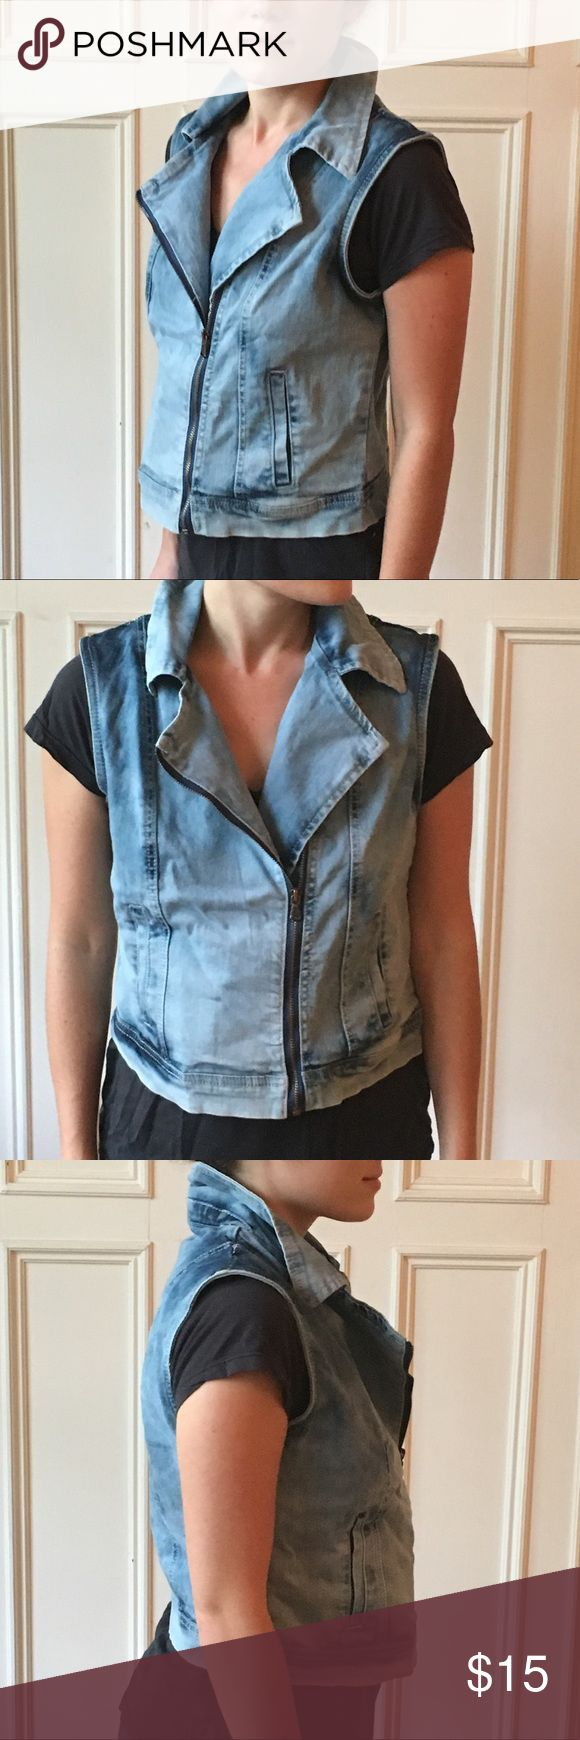 Delia's Sleeveless Denim Jacket Tags still on! Never worn. Great for layering for fall. Light wash sleeveless denim jacket Jackets & Coats Vests